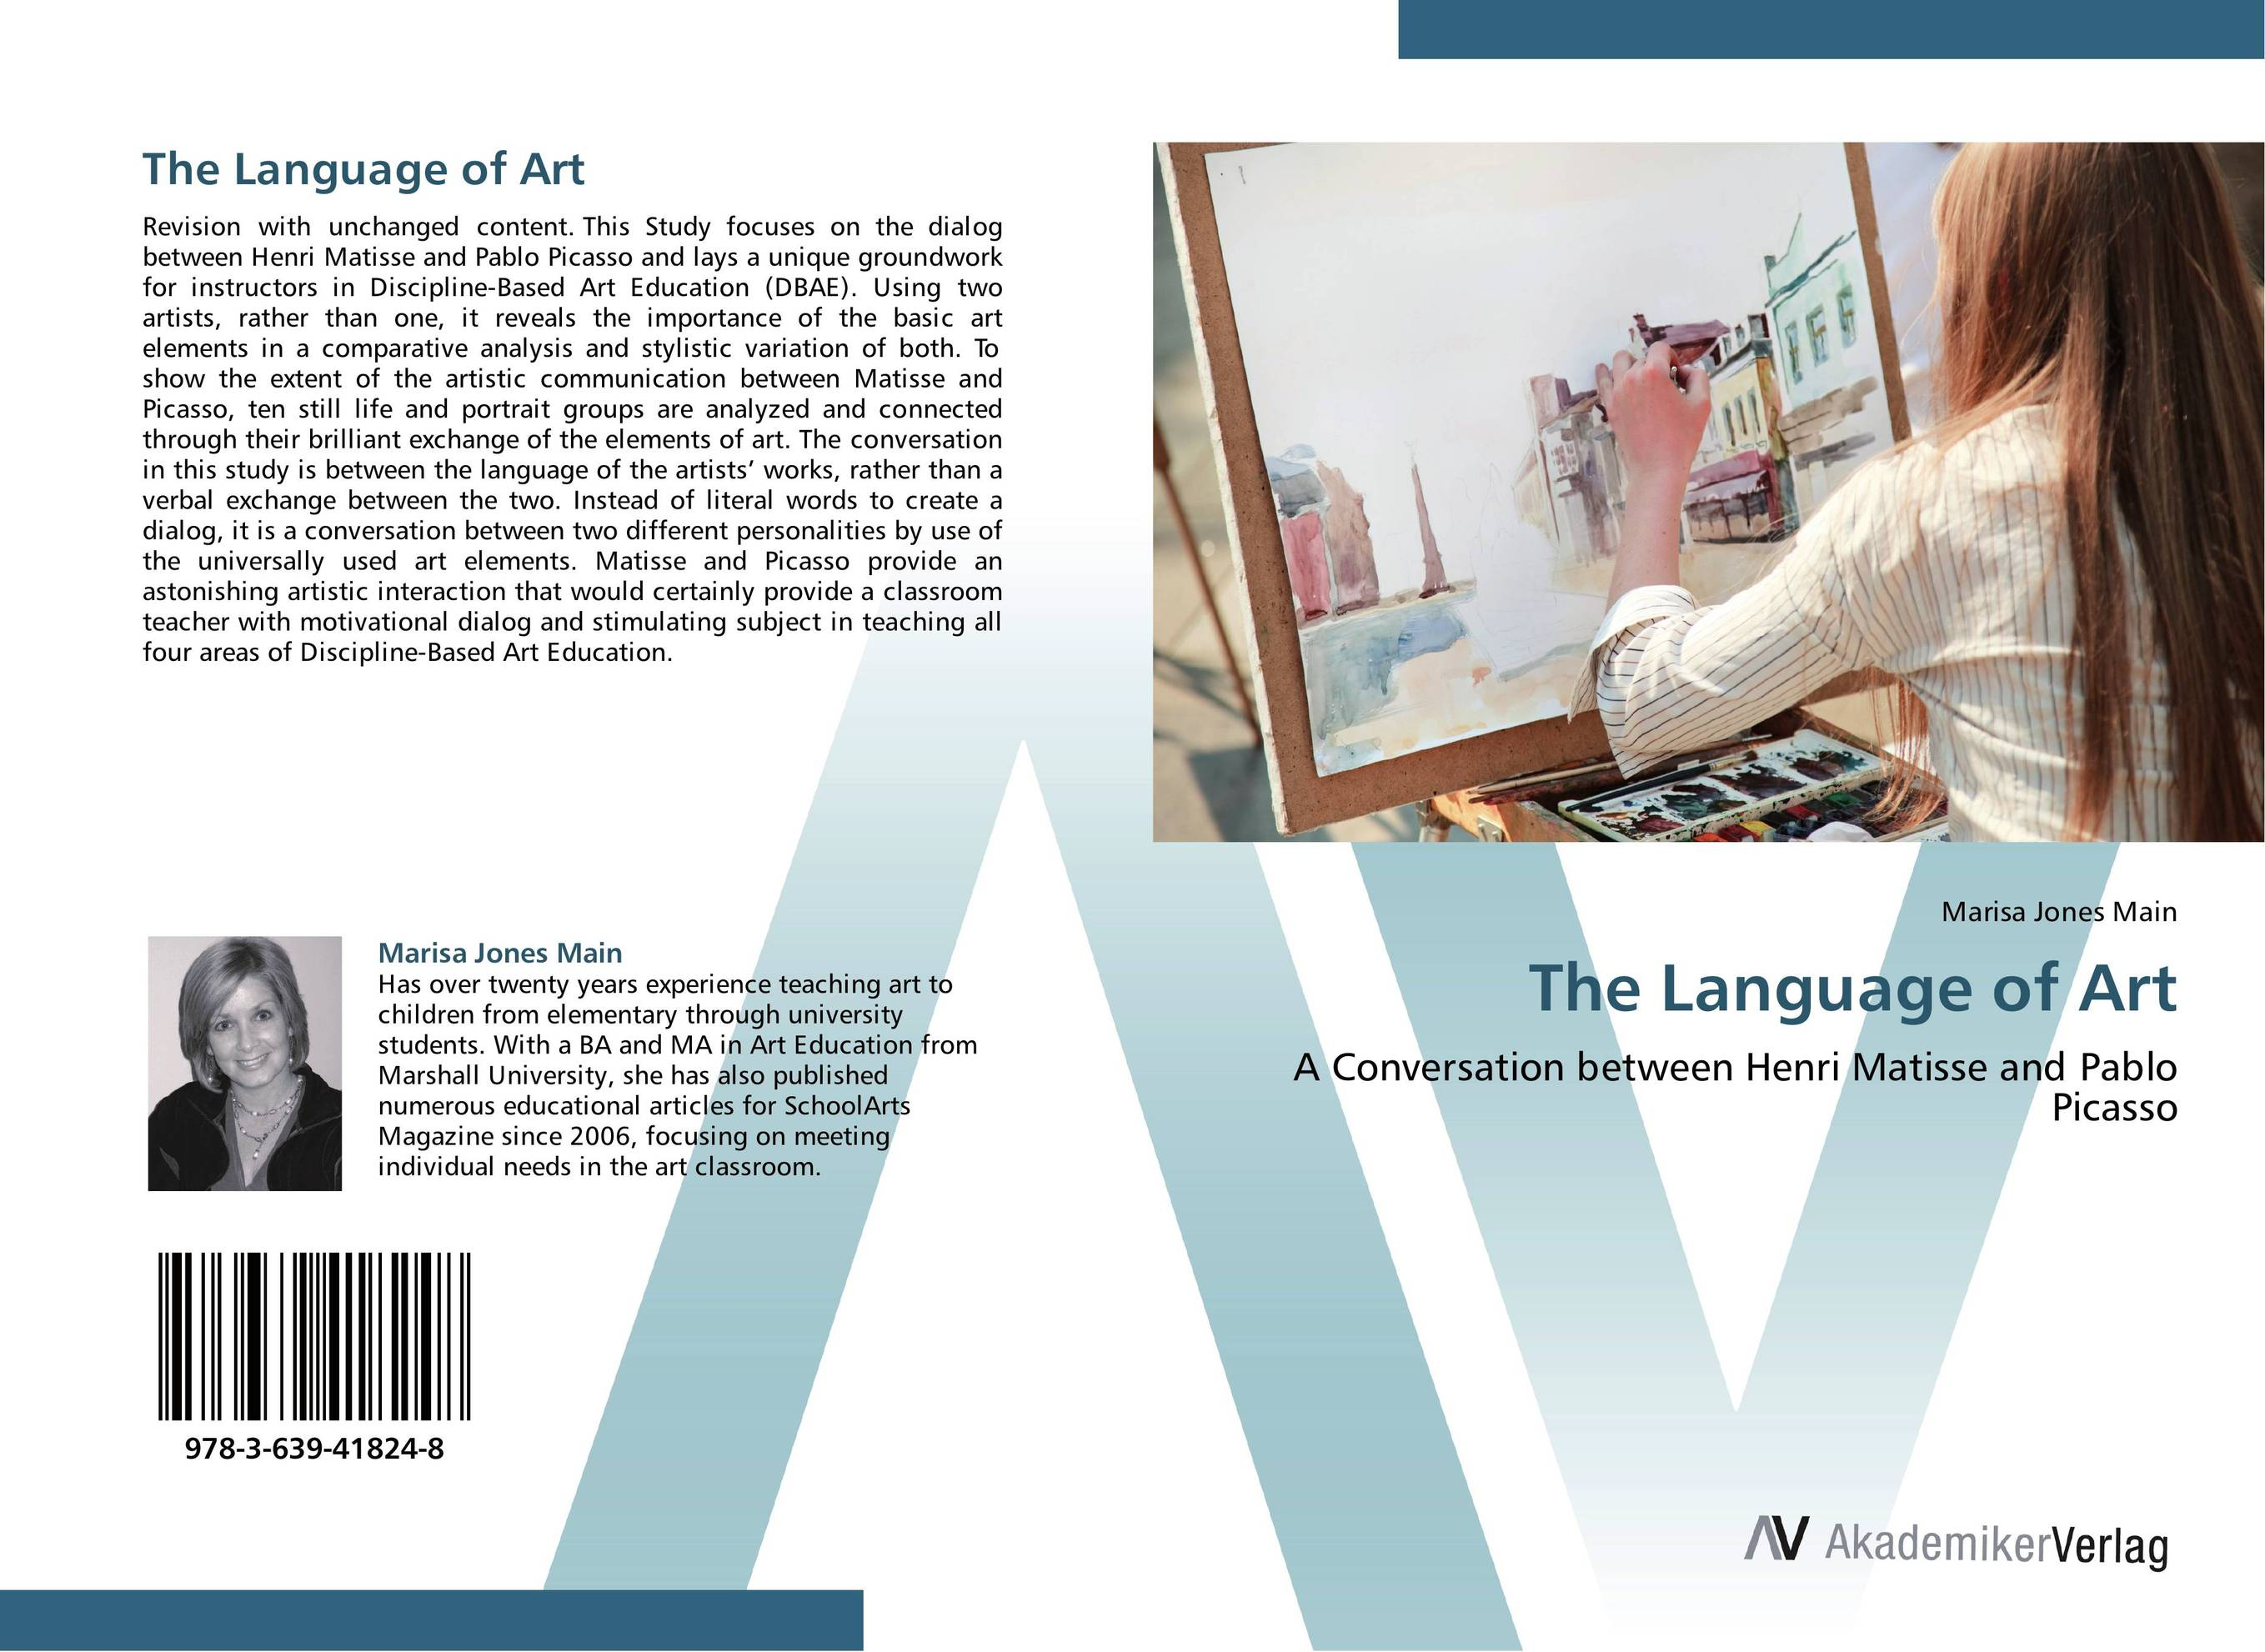 The Language of Art shakeel ahmad sofi and fayaz ahmad nika art of subliminal seduction and the subjugation of youth